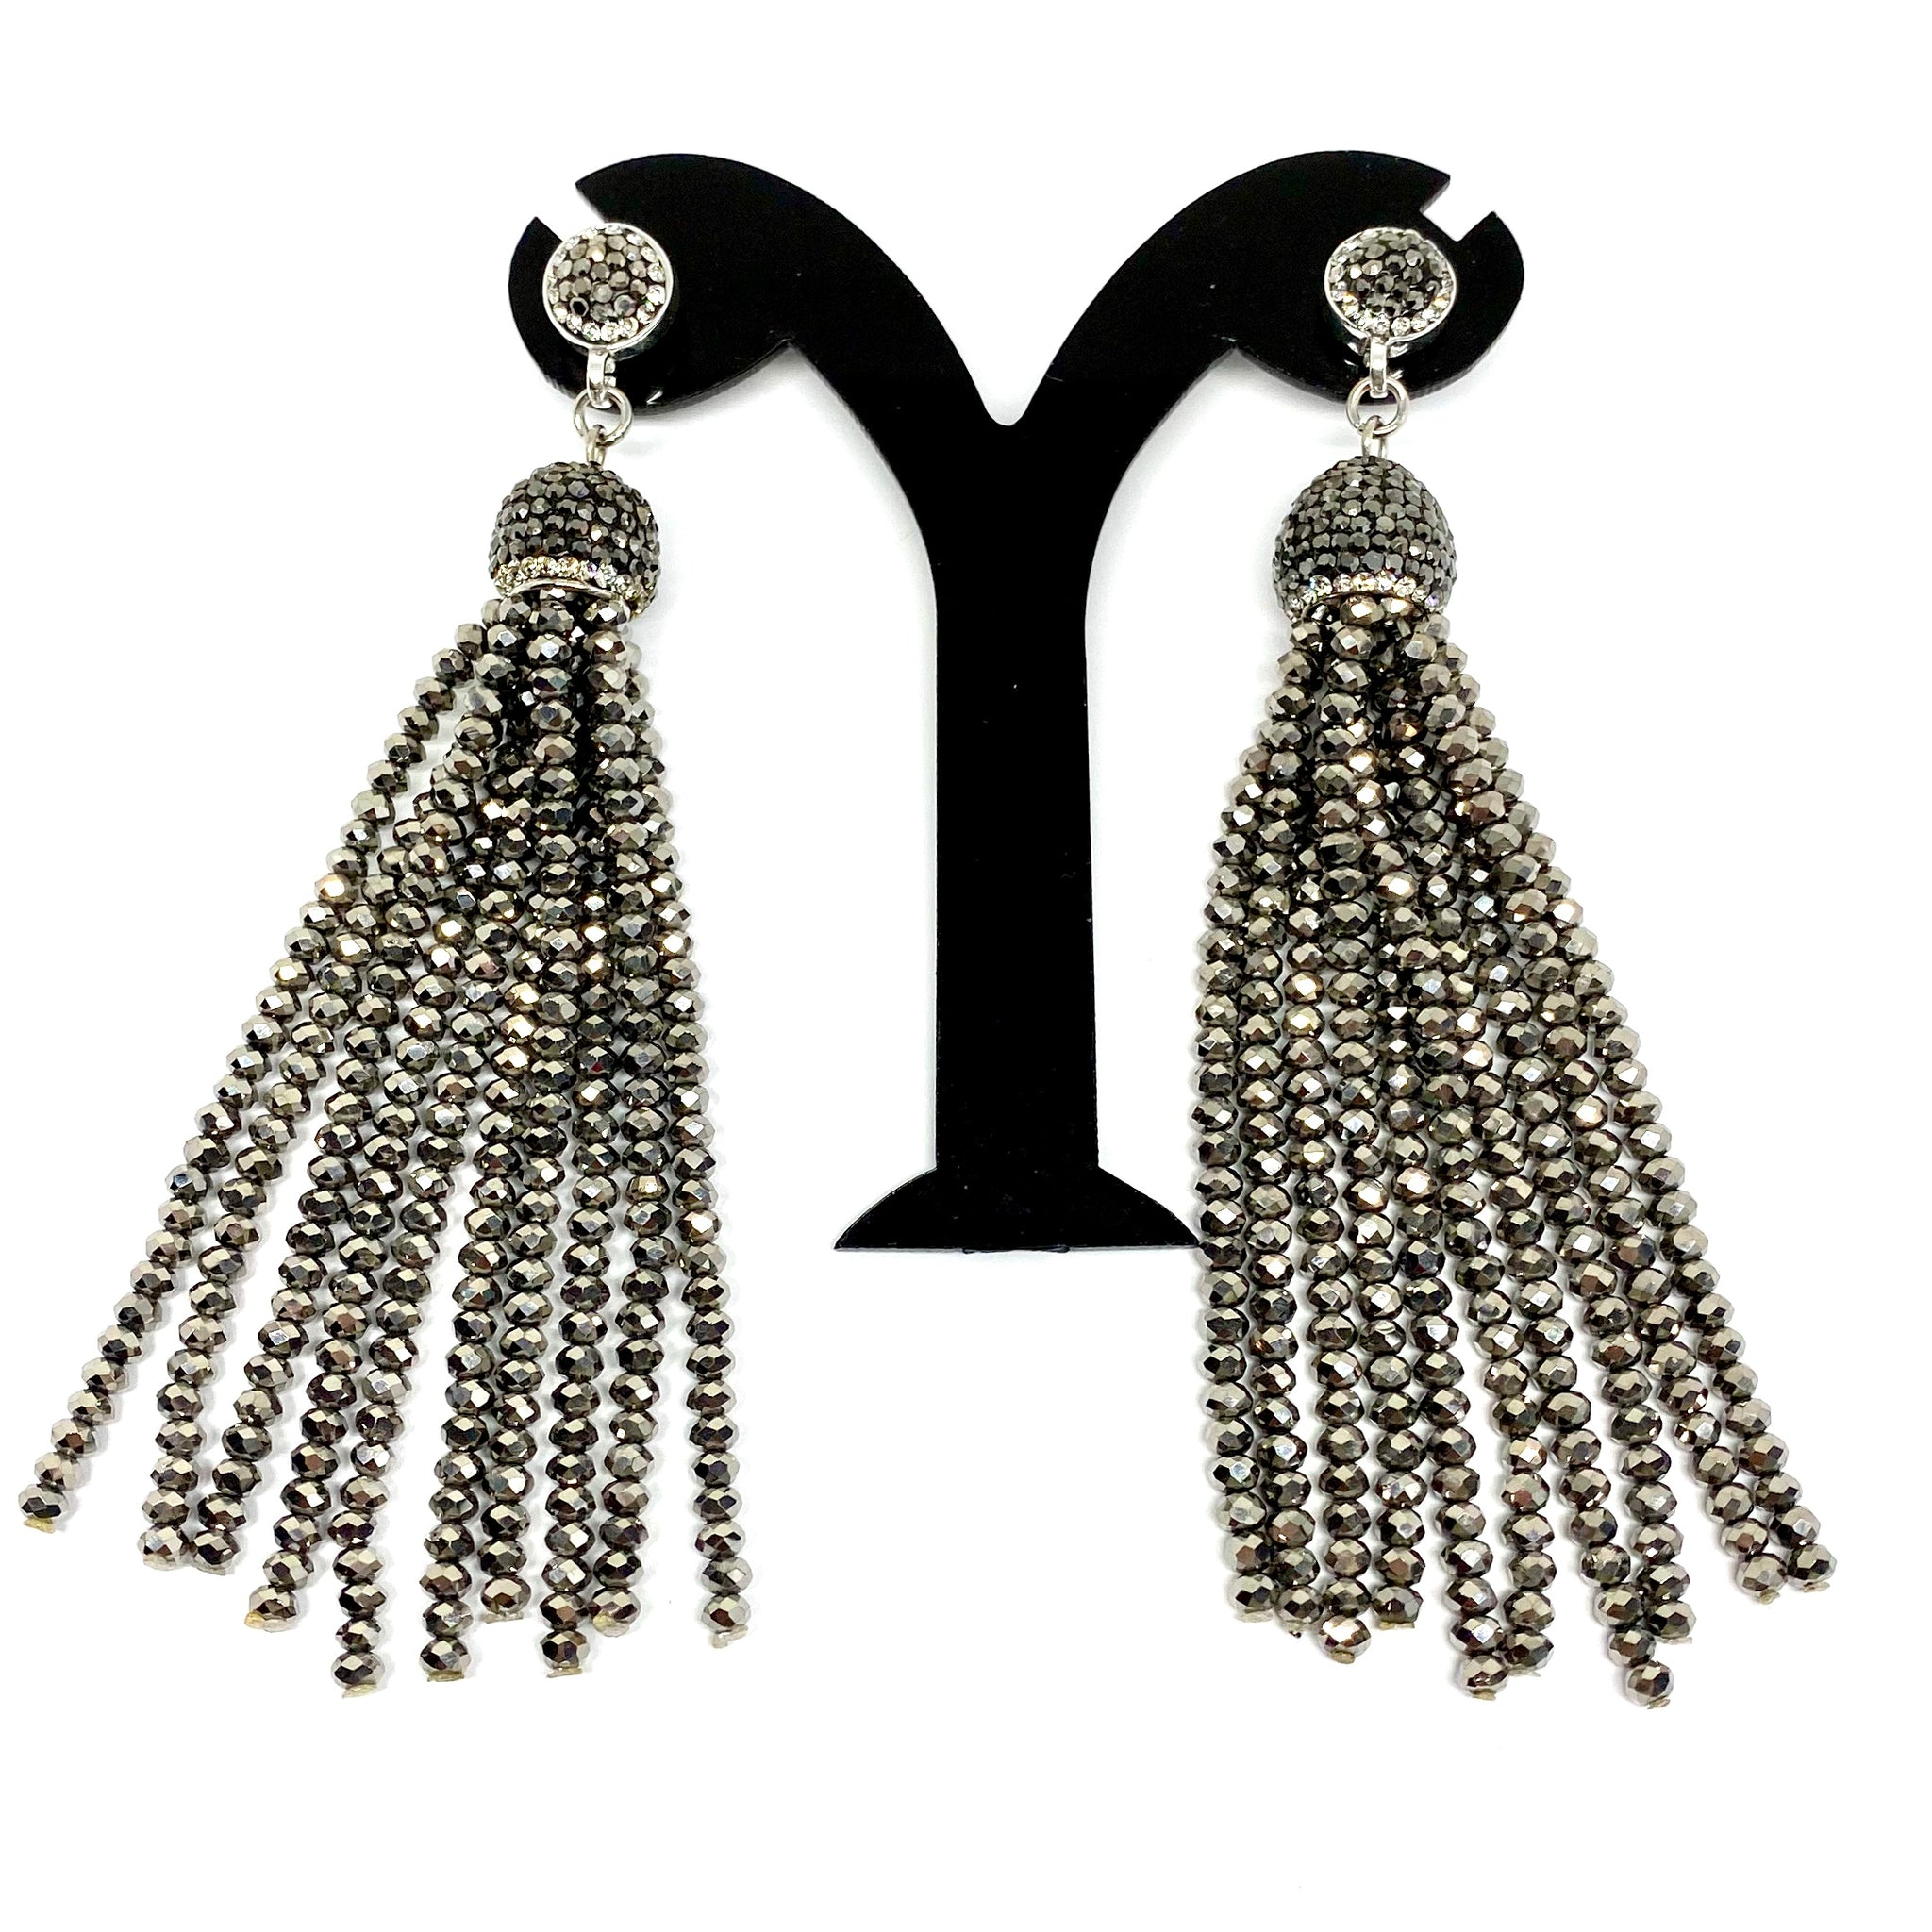 DROP PENDENT EARRINGS WITH LONG CRYSTAL TASSELS AND AUSTRIAN CRYSTALS THROUGHOUT by nyet jewelry.